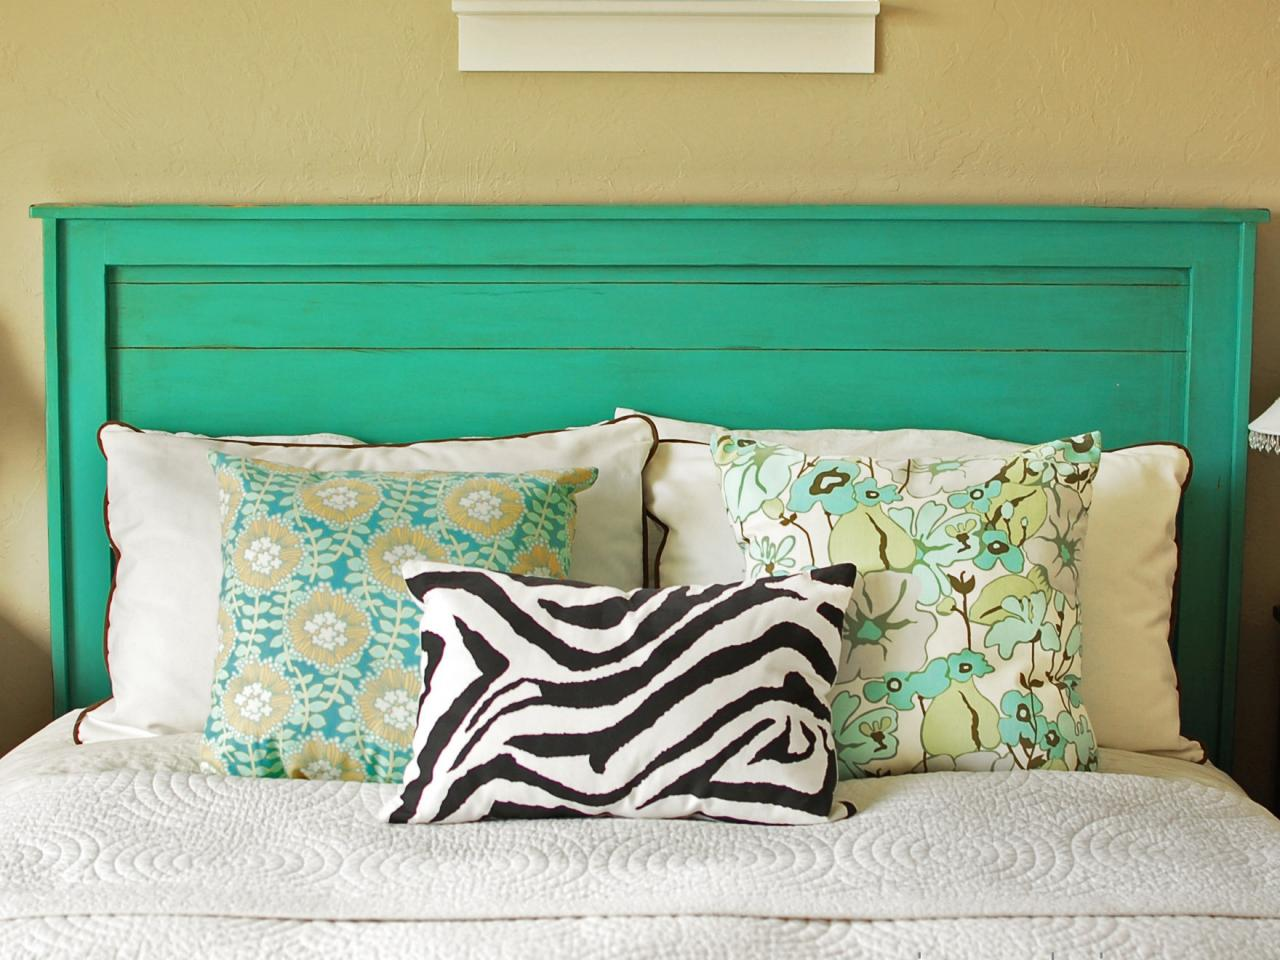 diy-headboard-ideas-2